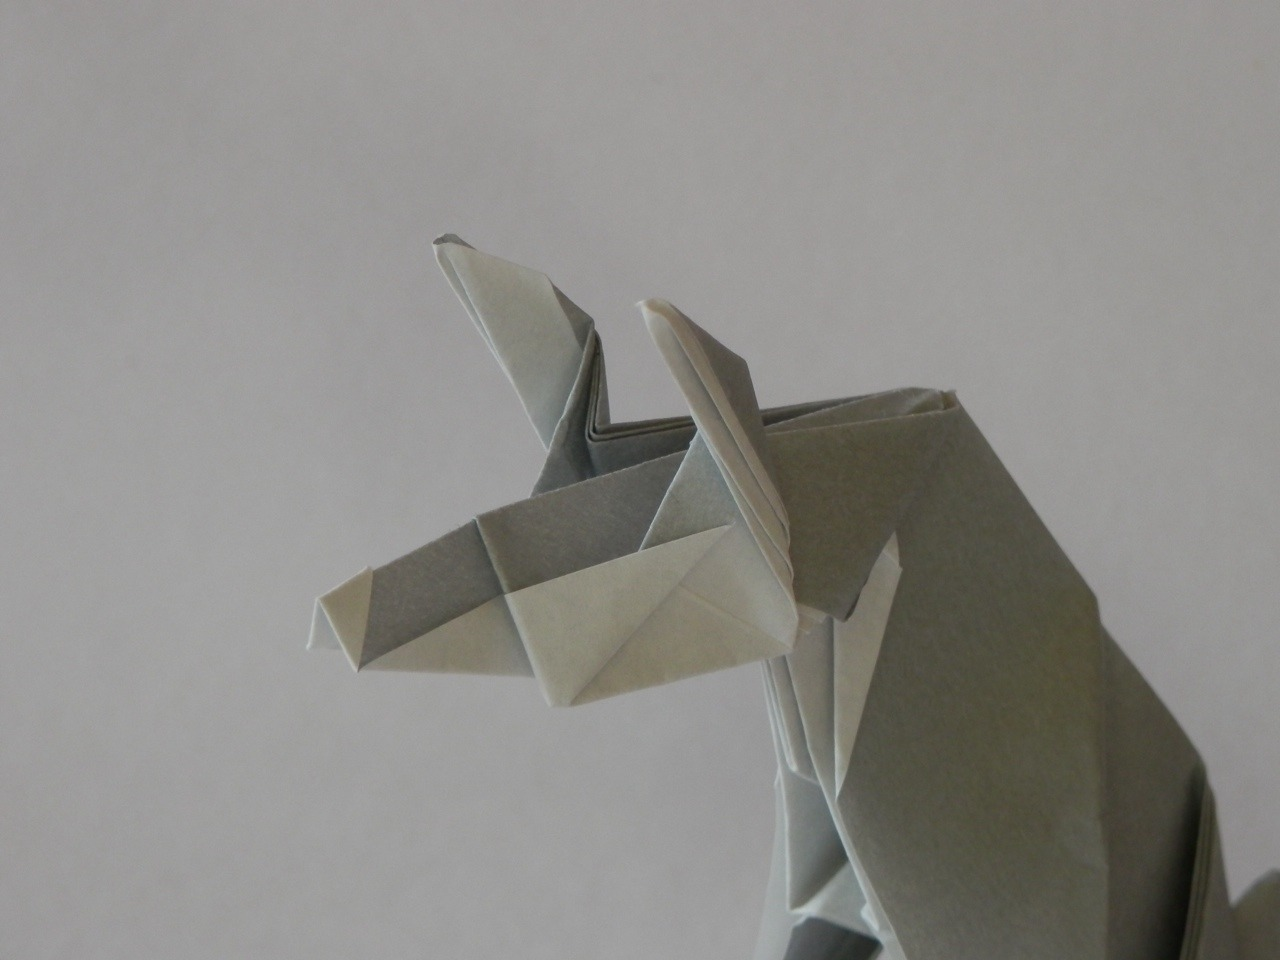 origami wolf instructions diagram 91 ford ranger fuse panel foldaway  each model is folded from a single